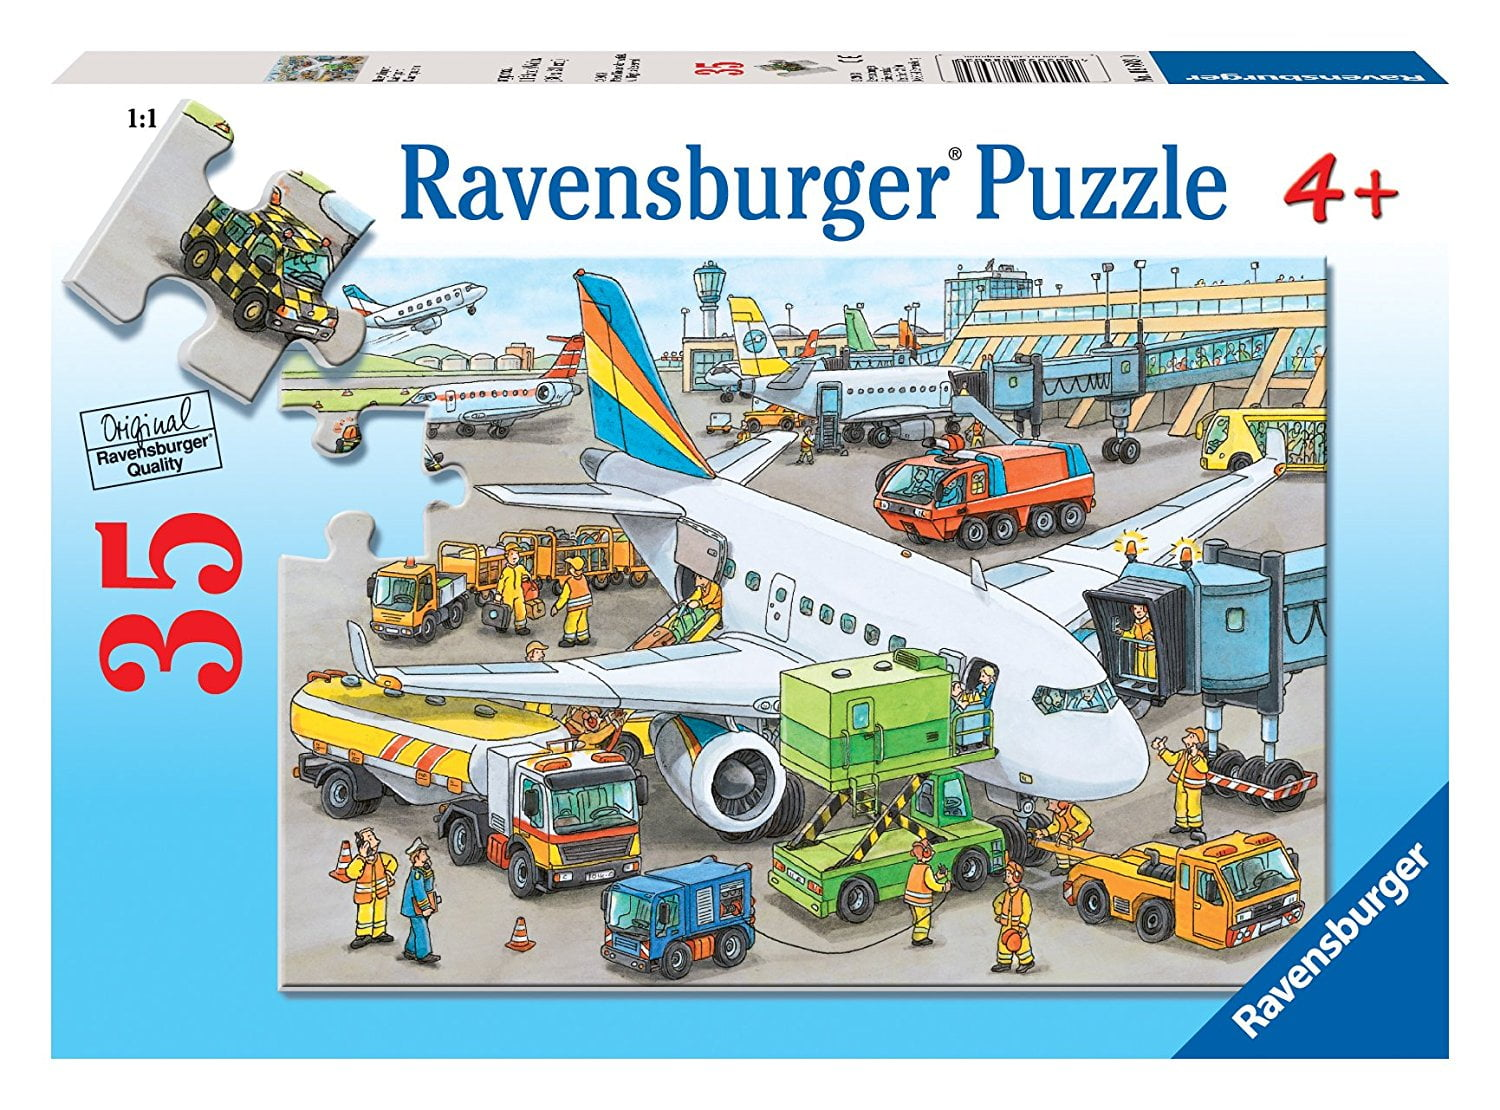 Busy Airport 35 Piece Jigsaw Puzzle By Ravensburger